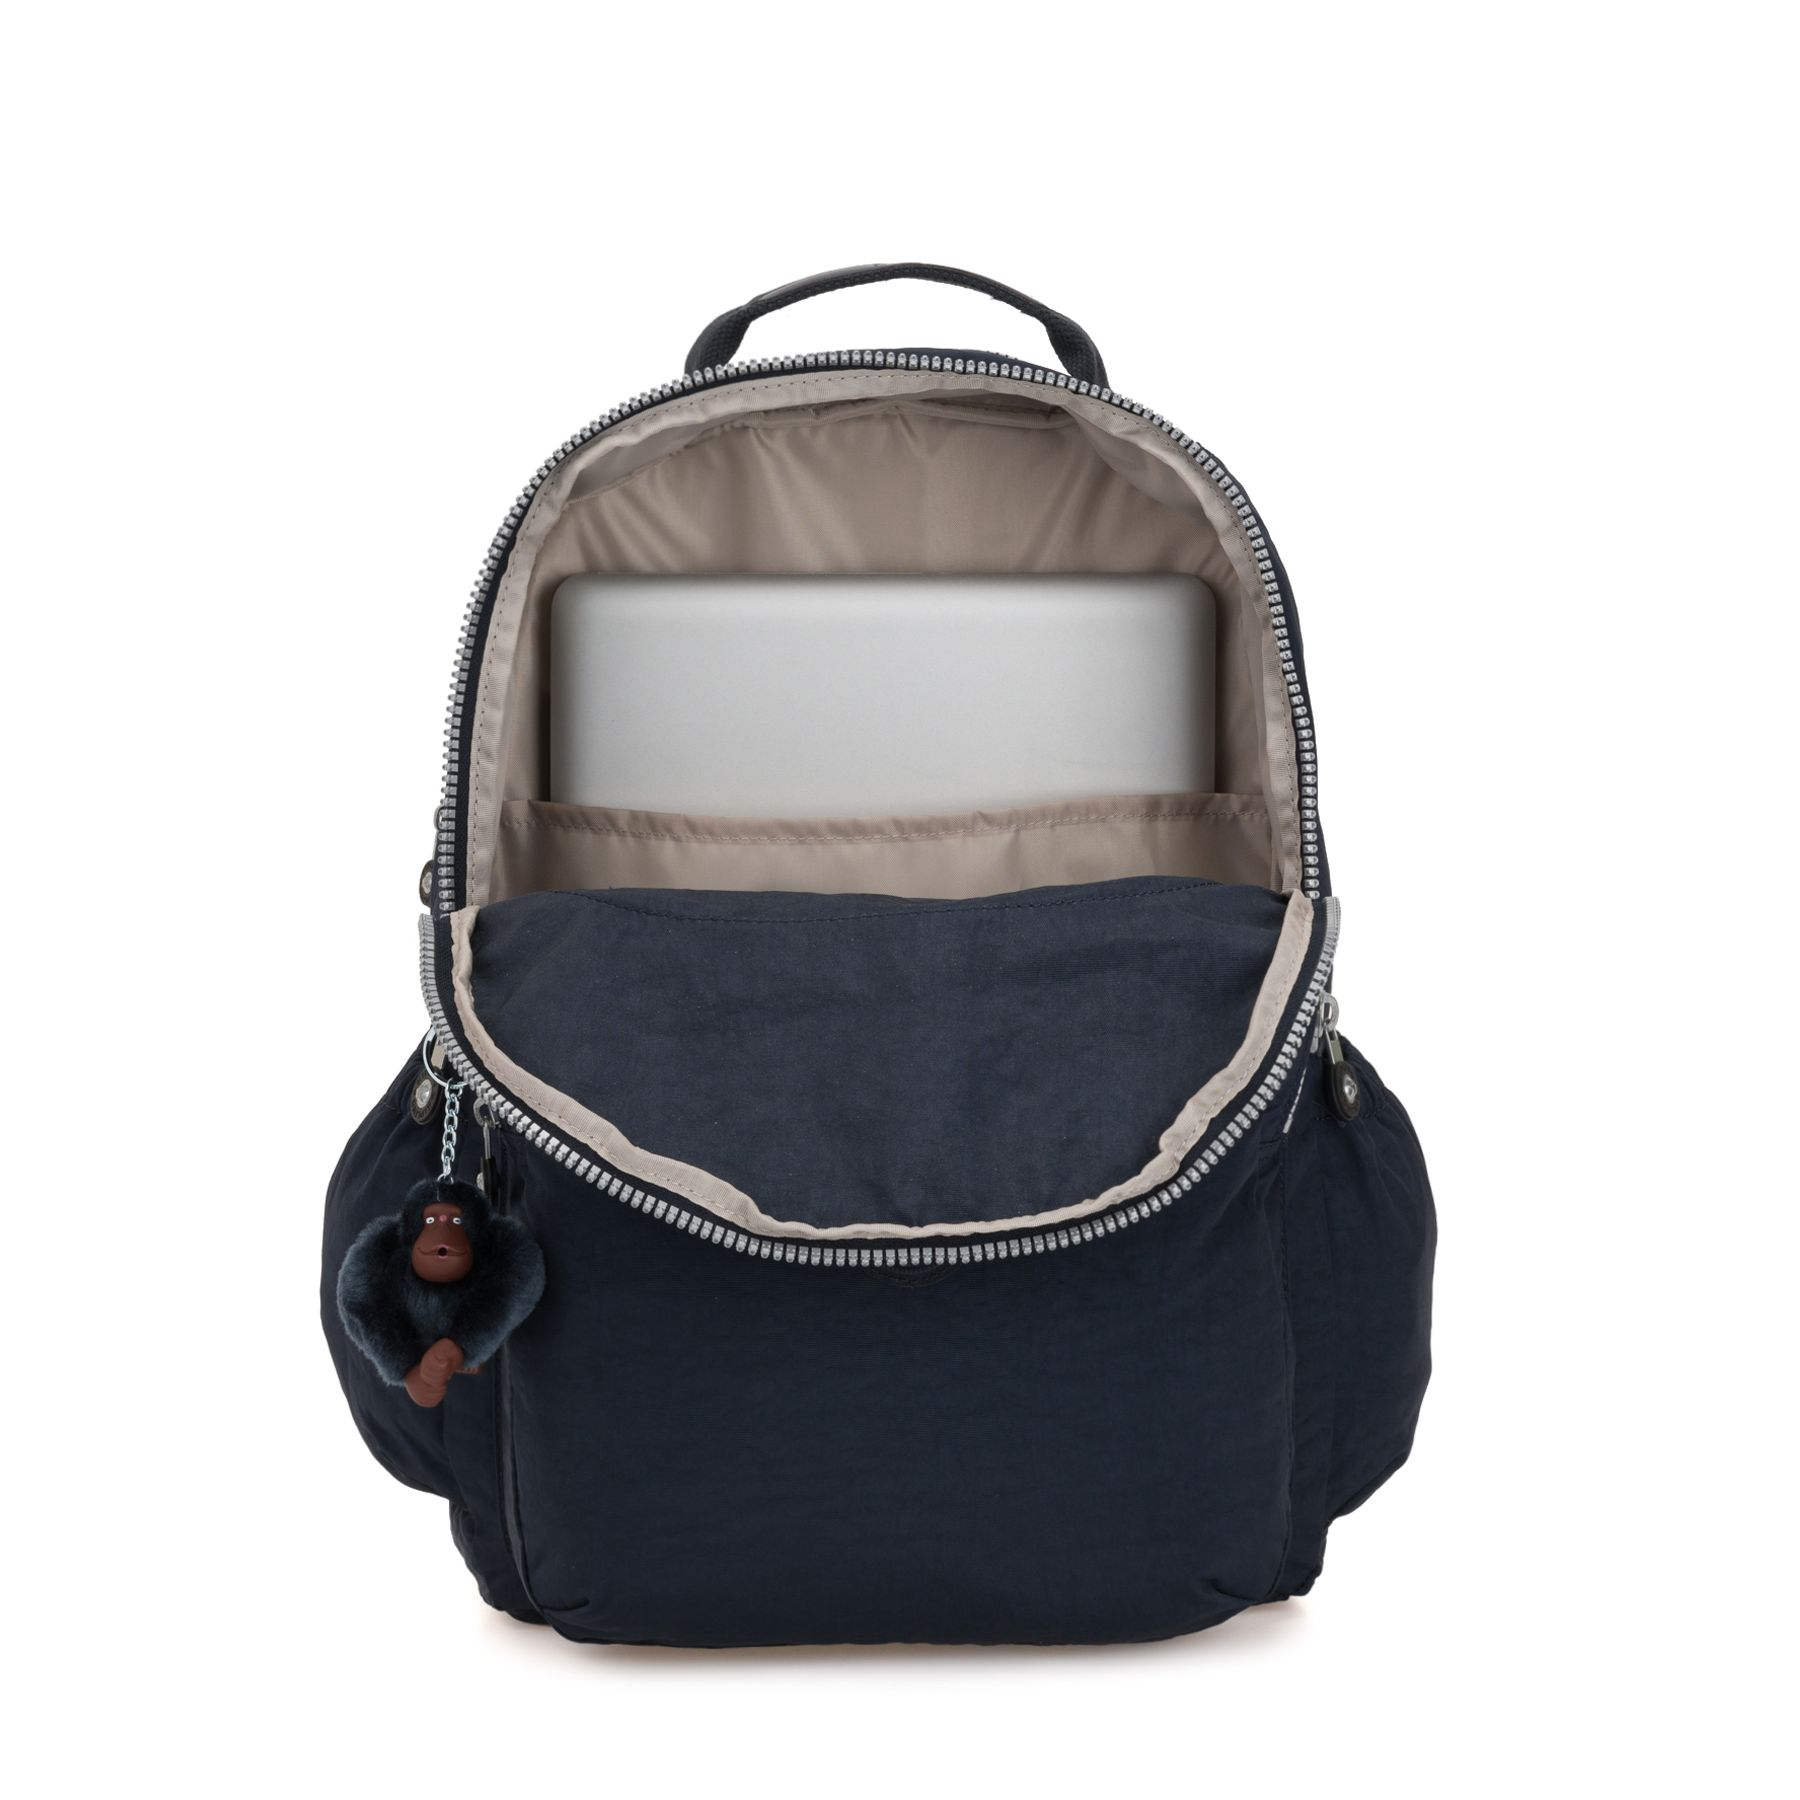 SEOUL GO XL SCHOOL BAGS by Kipling - Inside view